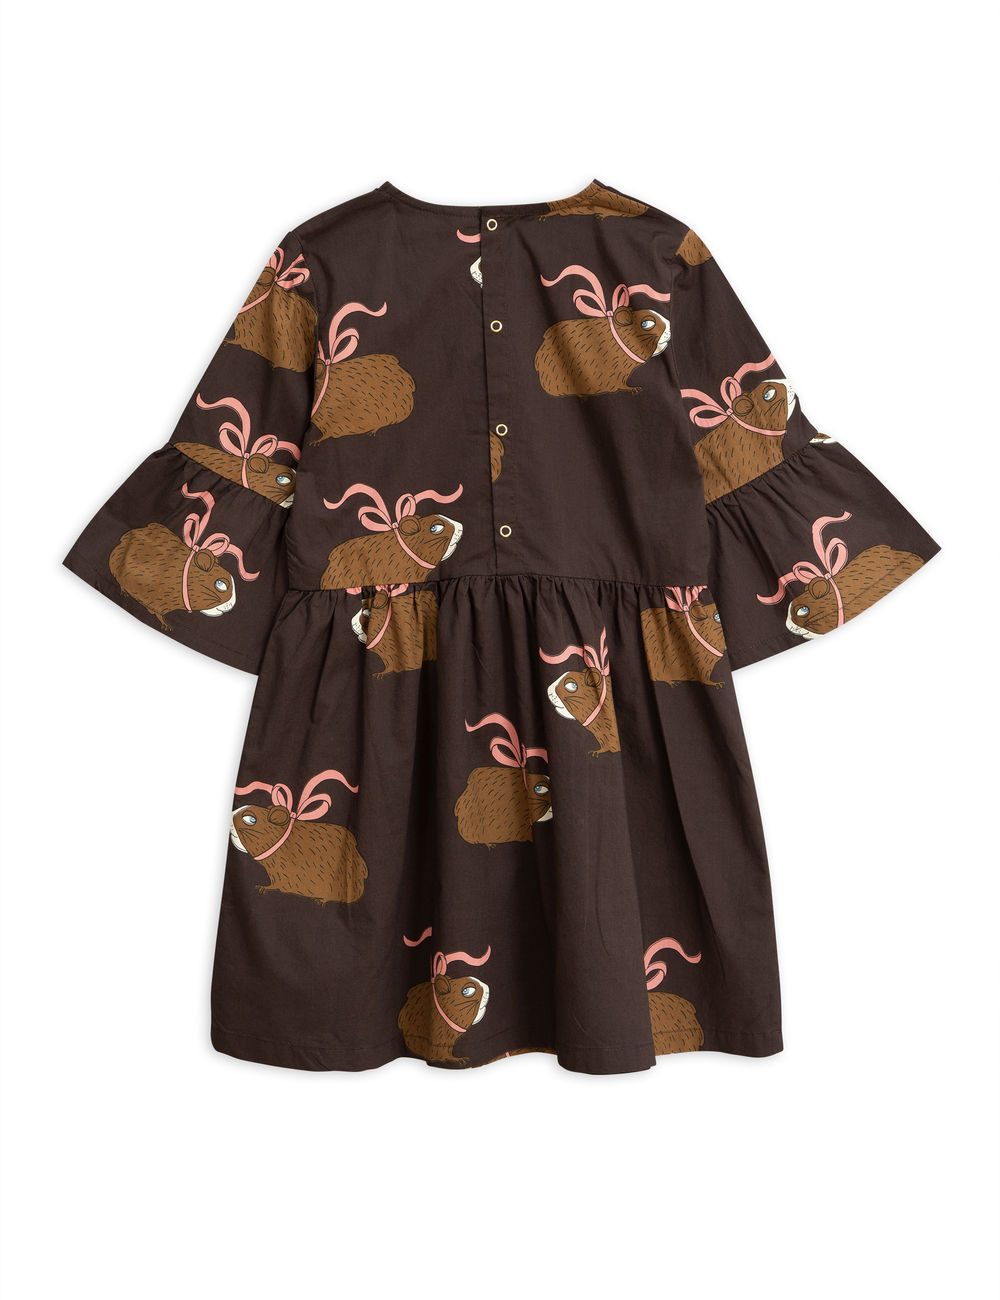 MINI RODINI POSH GUINEA PIG DRESS, BROWN